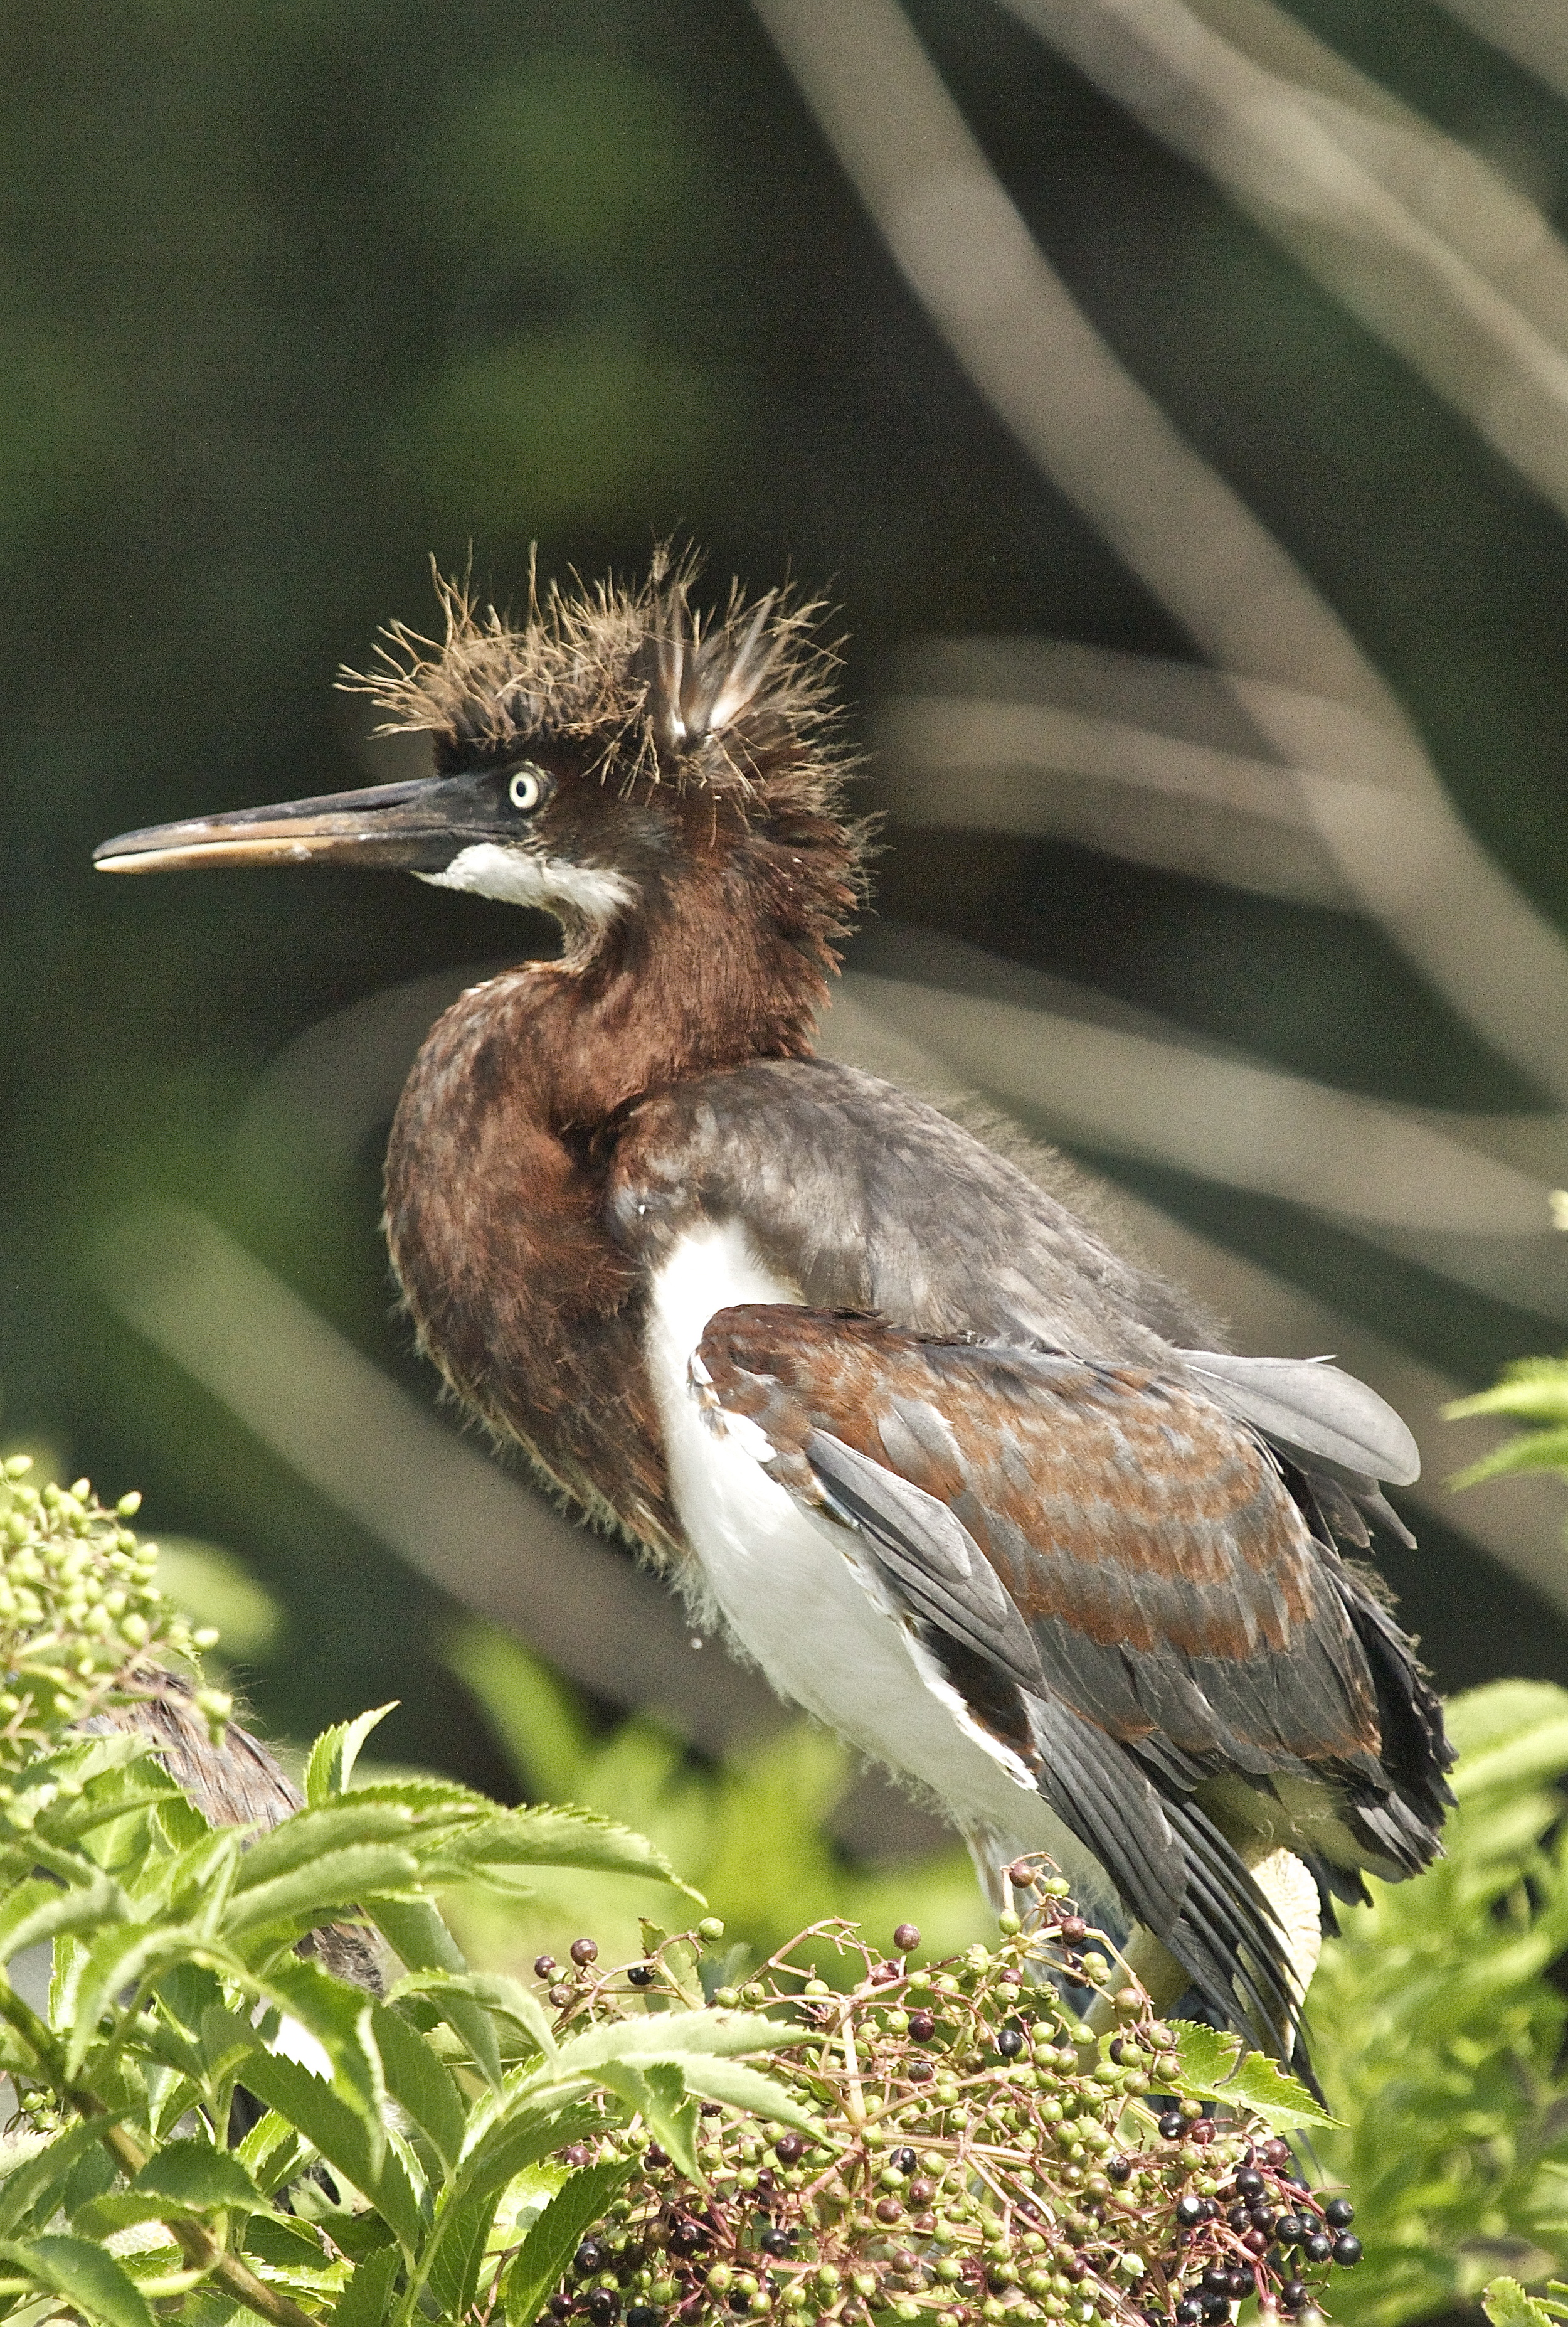 Tricolored Heron chick with spiked hairdo.